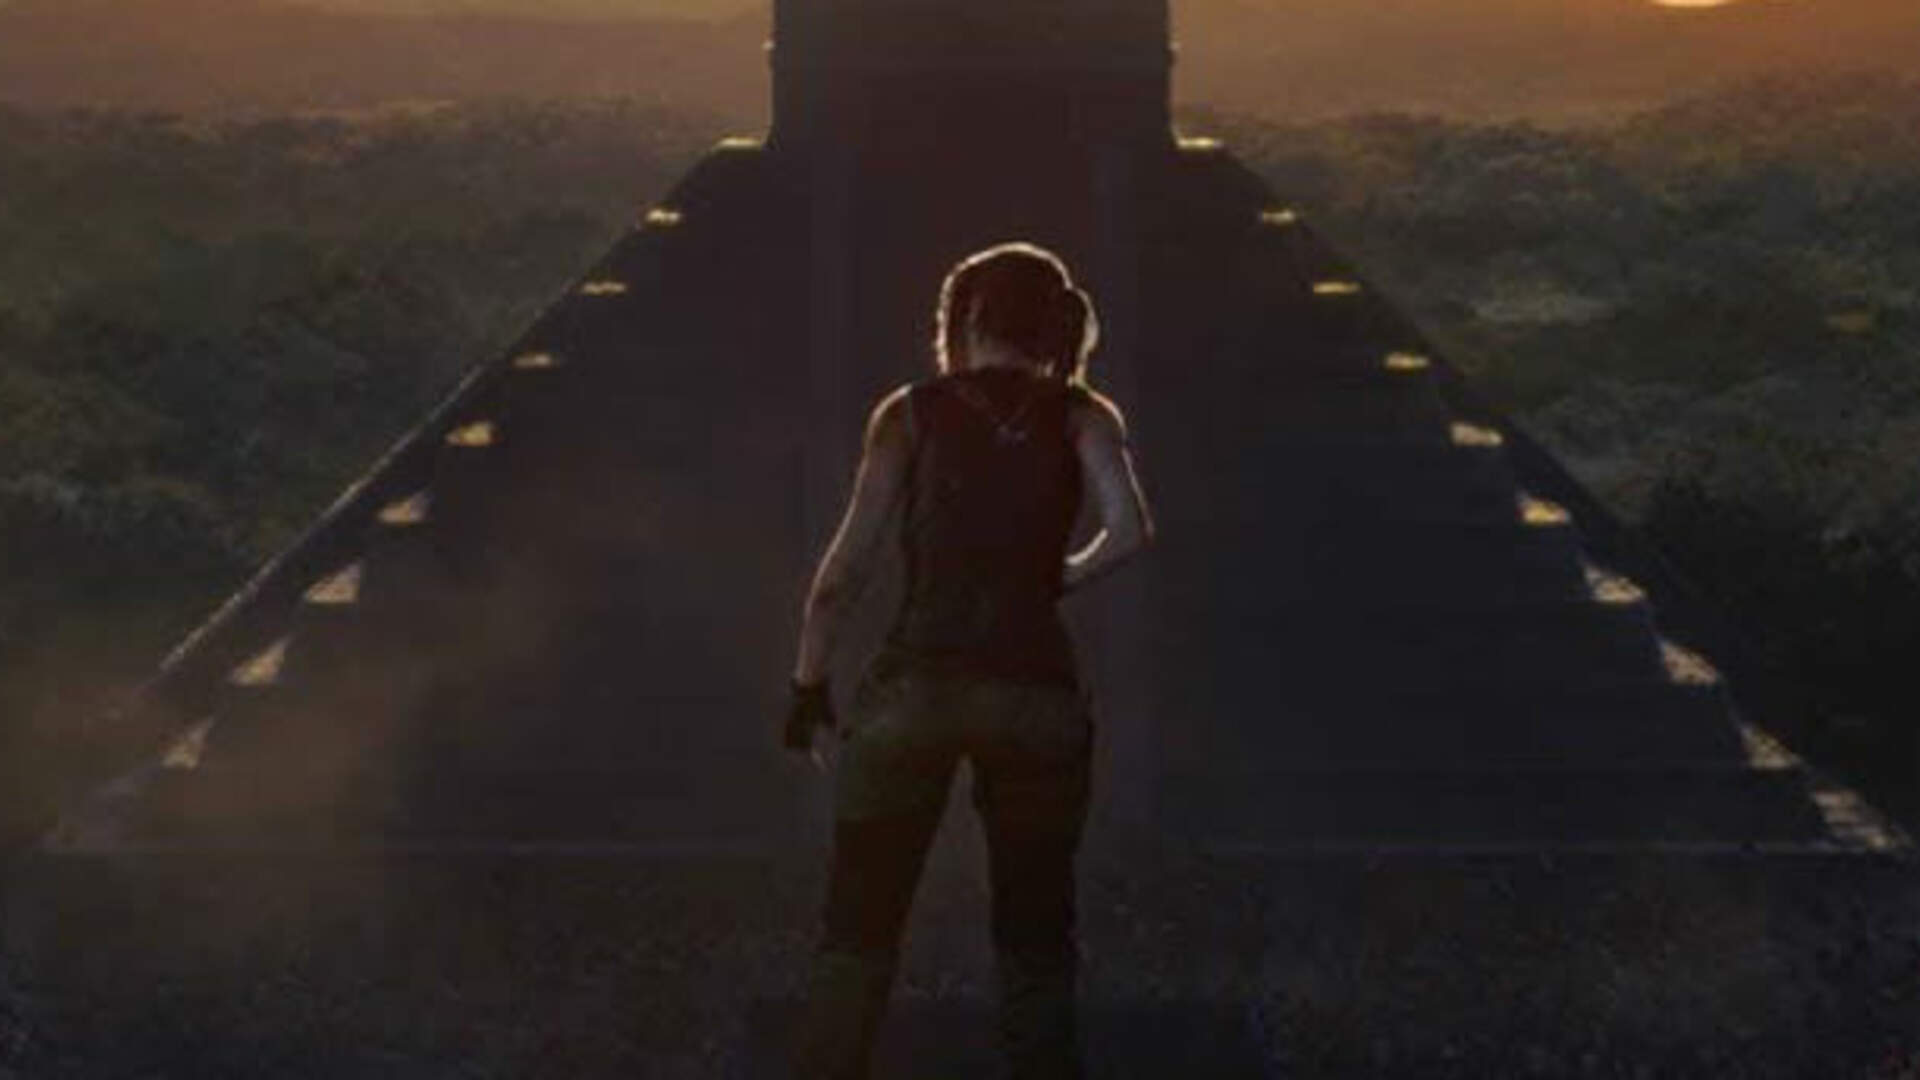 Shadow of the Tomb Raider Season Pass Includes 7 Tombs, 7 Outfits, 7's for Everyone